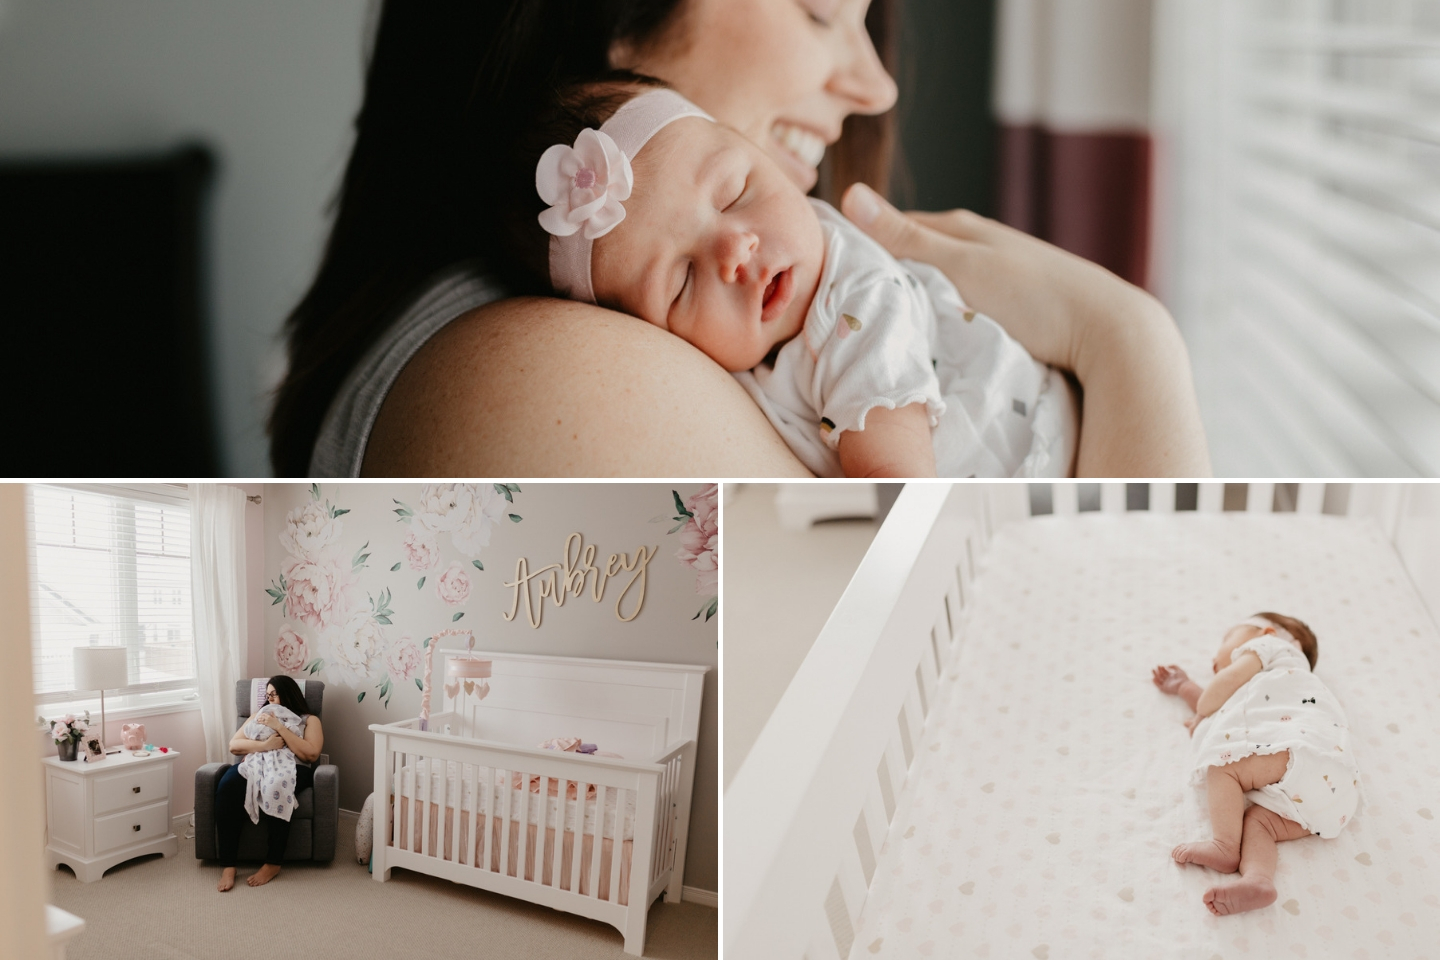 Newborn baby photo session in a beautiful bright home with pink nursery decor in Kanata Ottawa